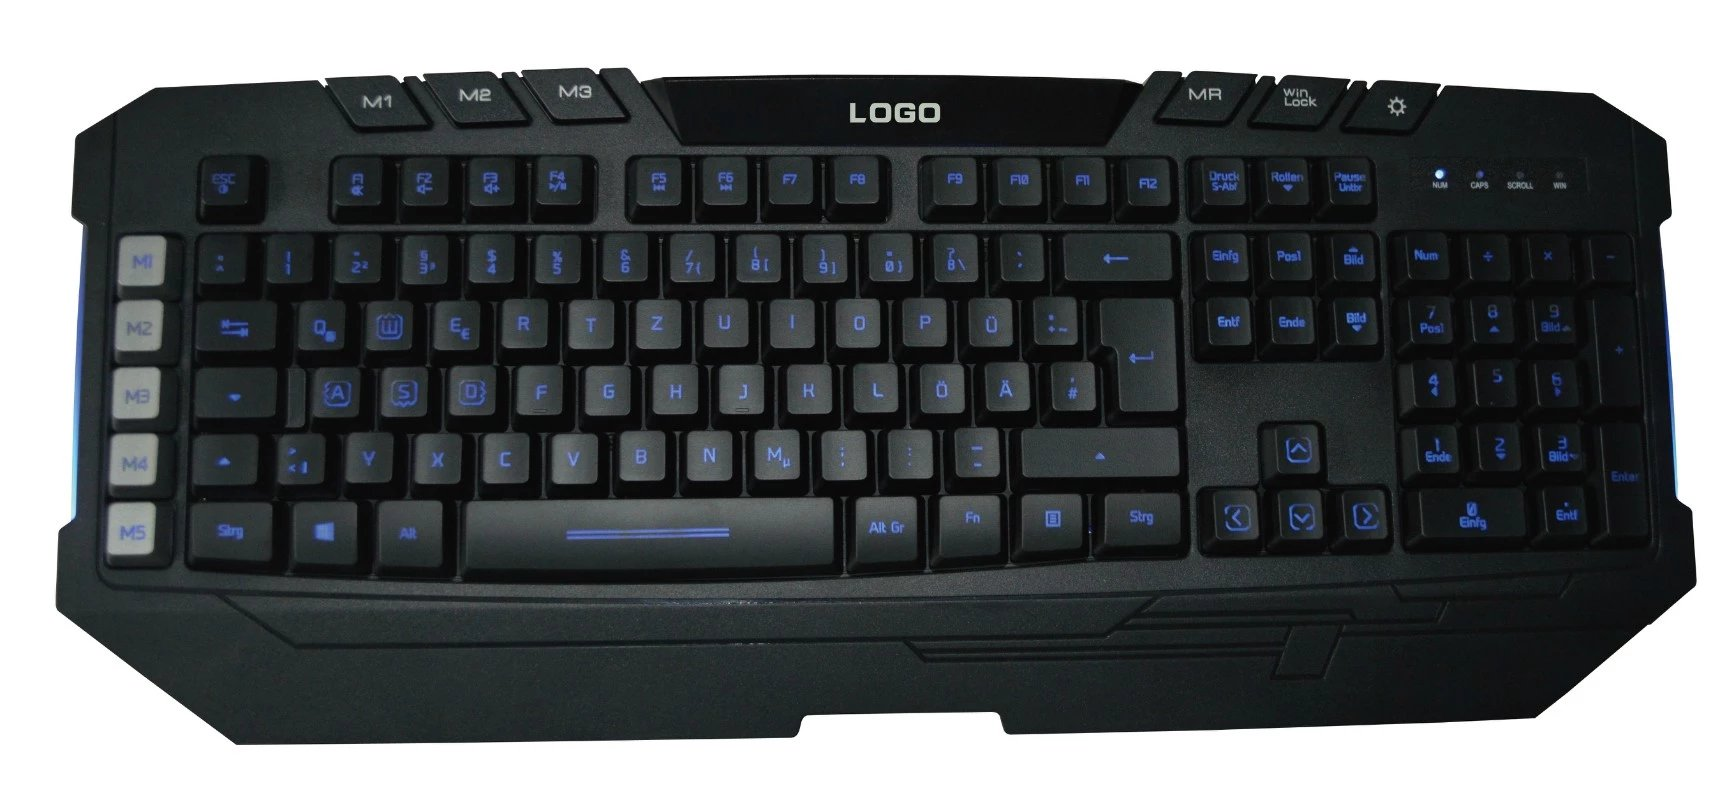 Backlit keyboard BK026B